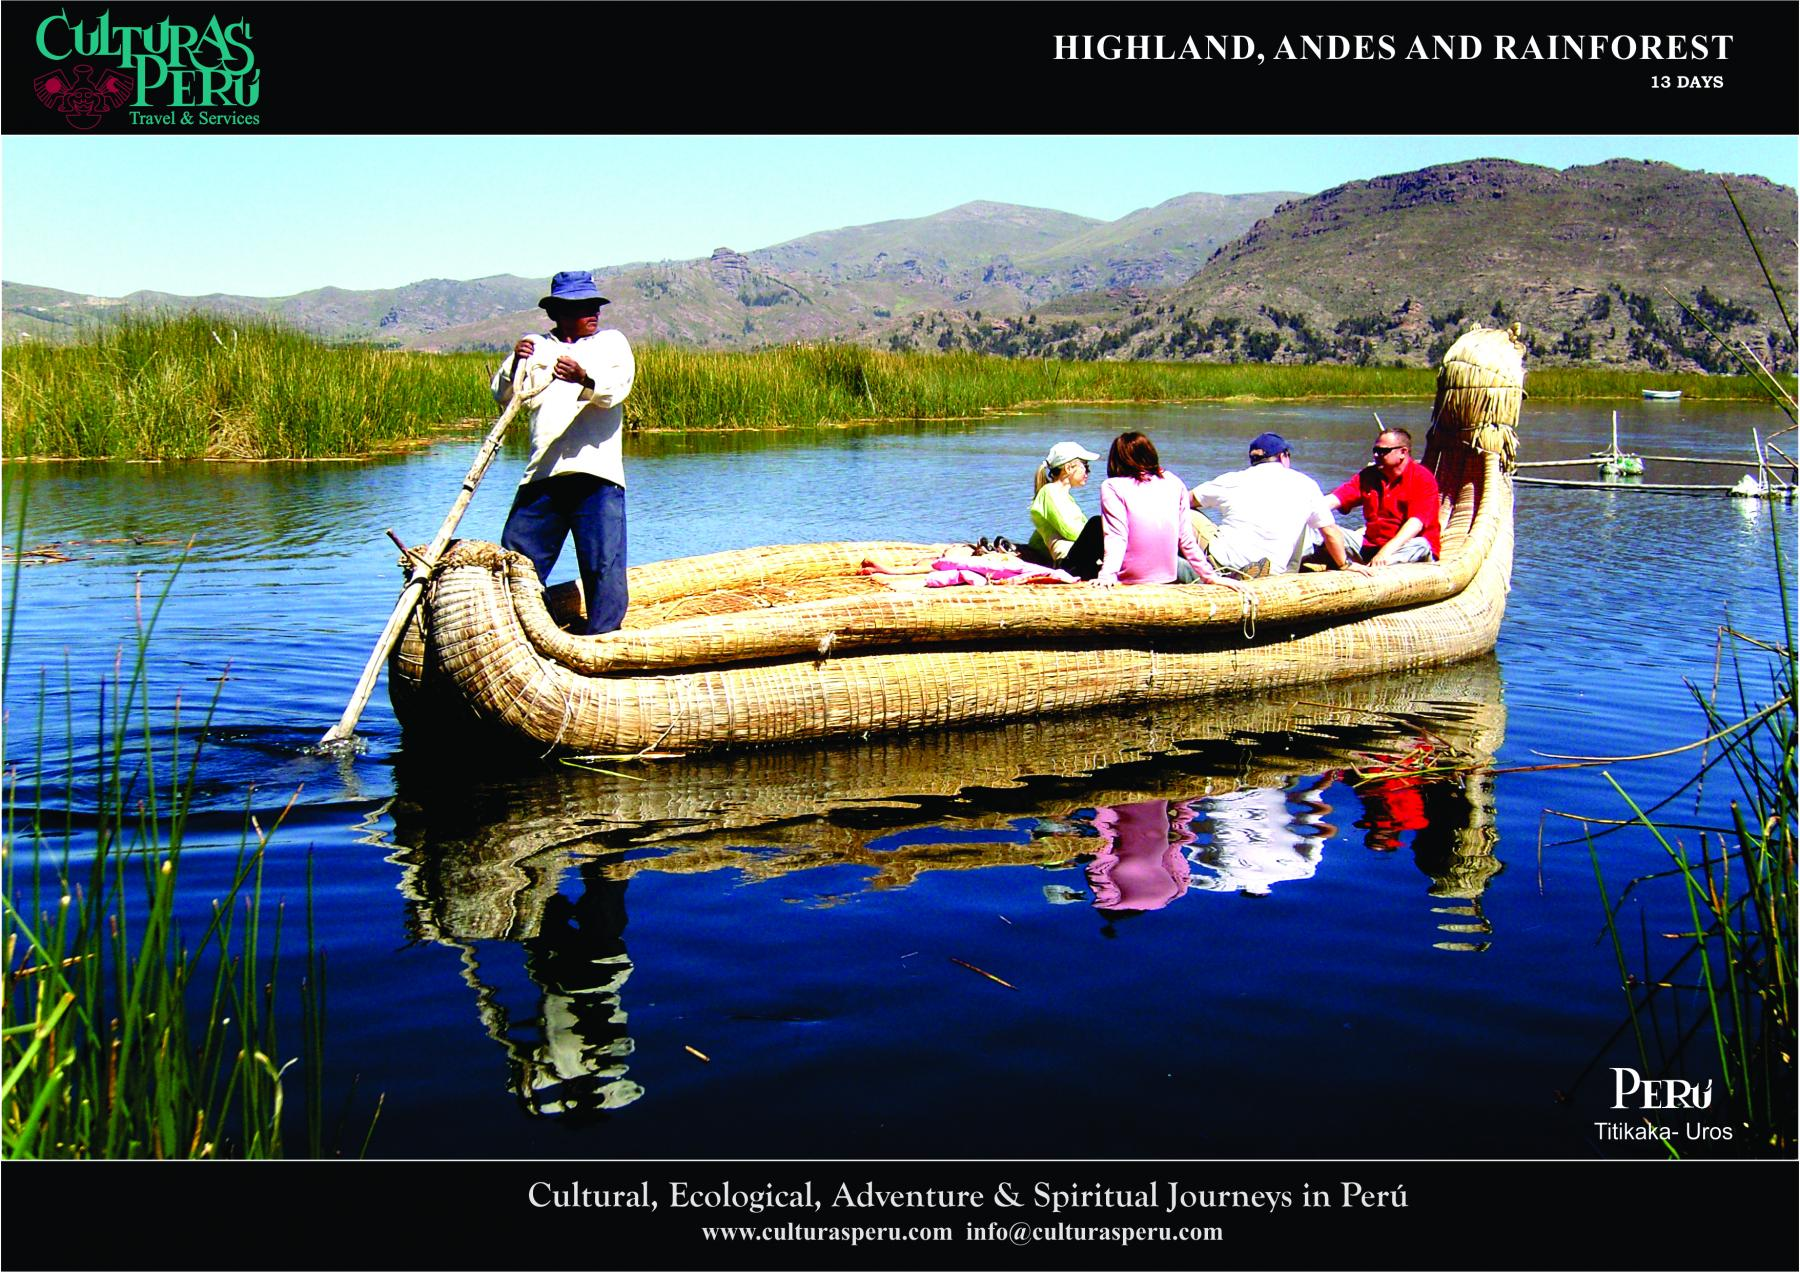 Day 3: Lake Titicaca - Floating Uros islands and Amantani Island